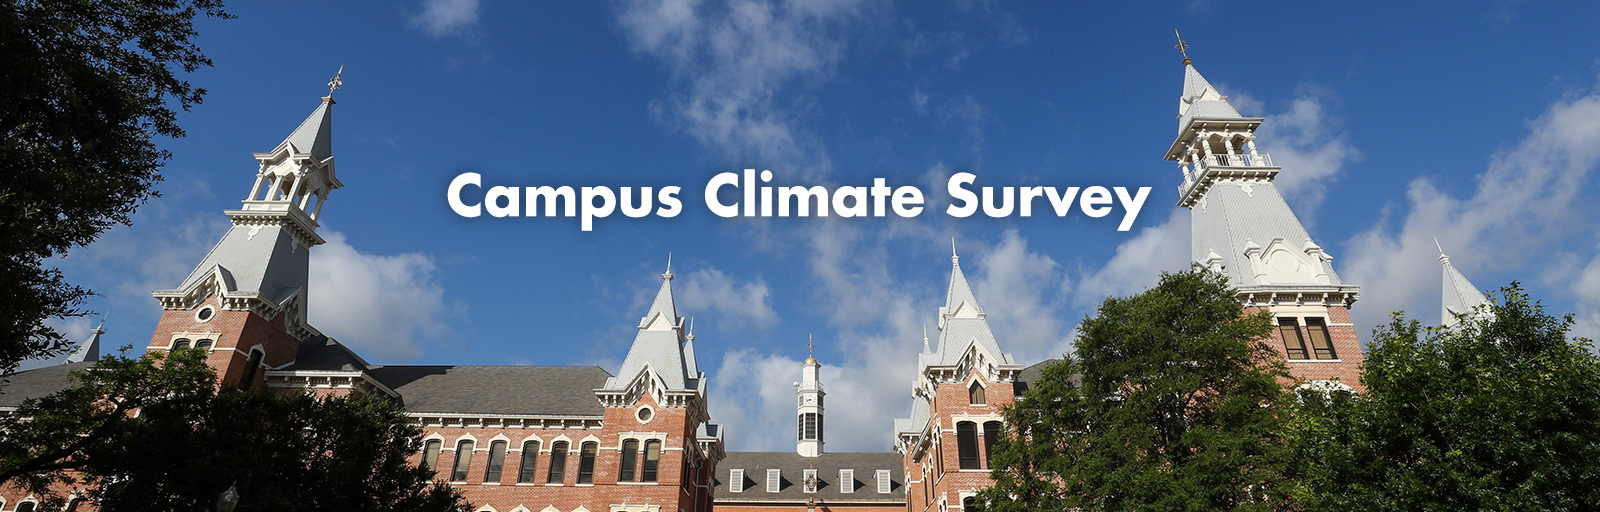 mc_diversity-campus-climate-survey